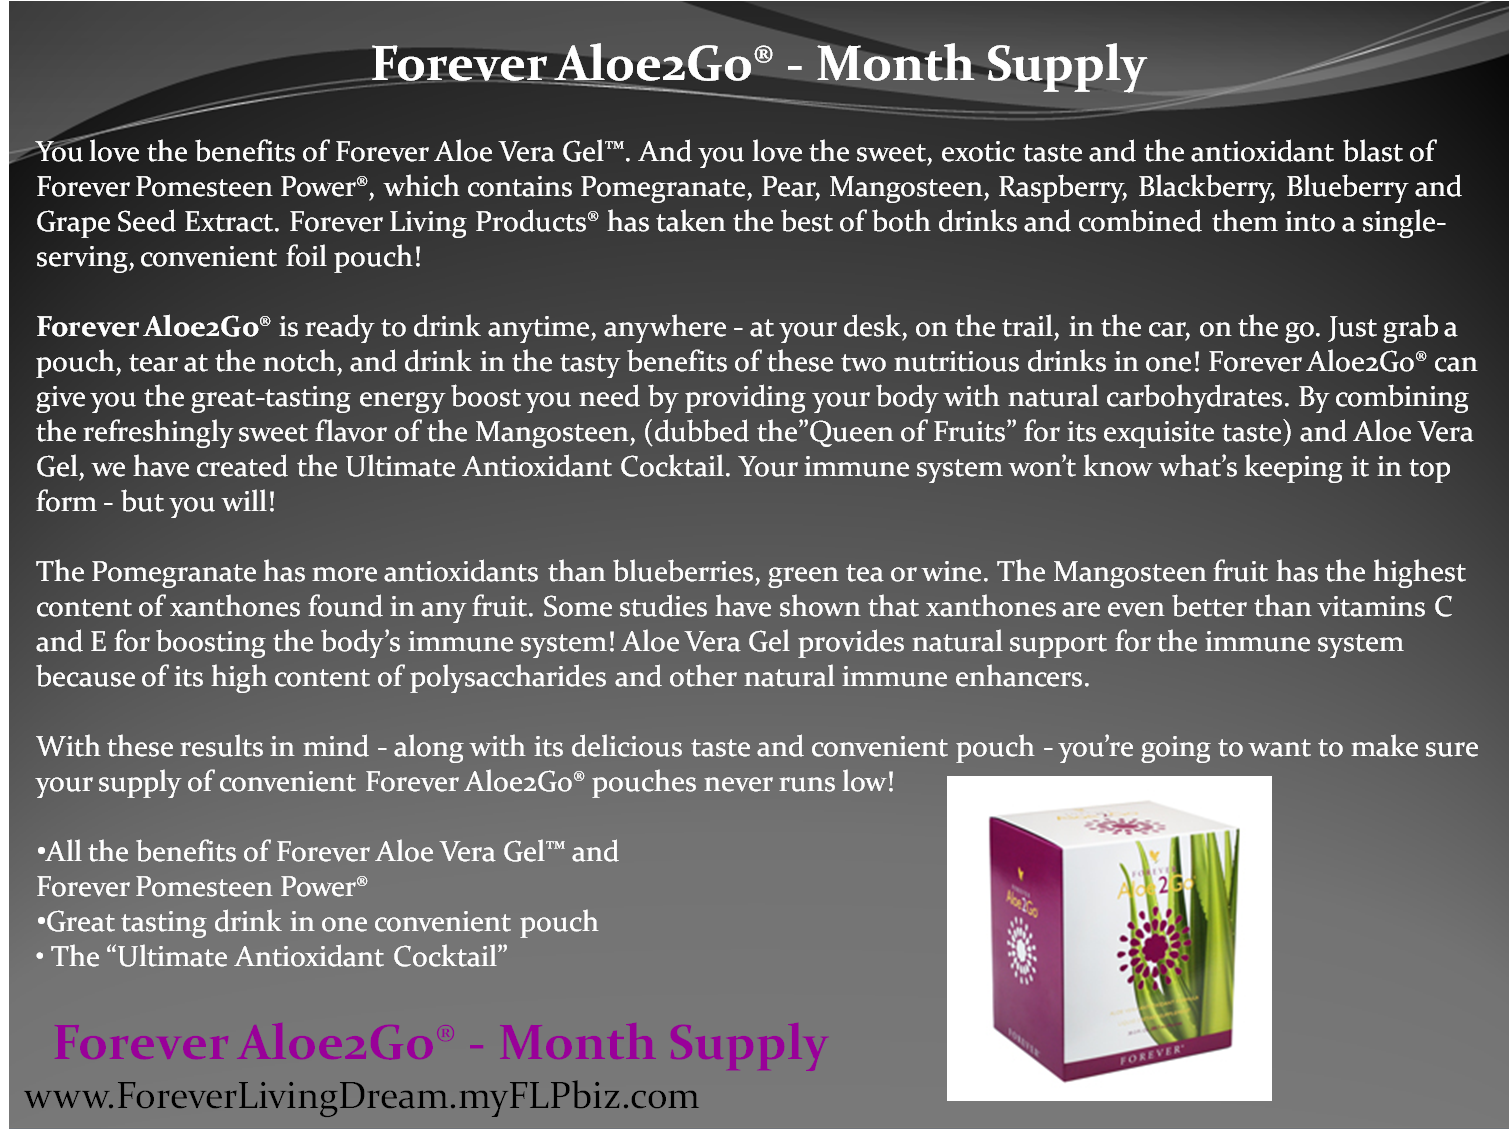 Forever living product business plan